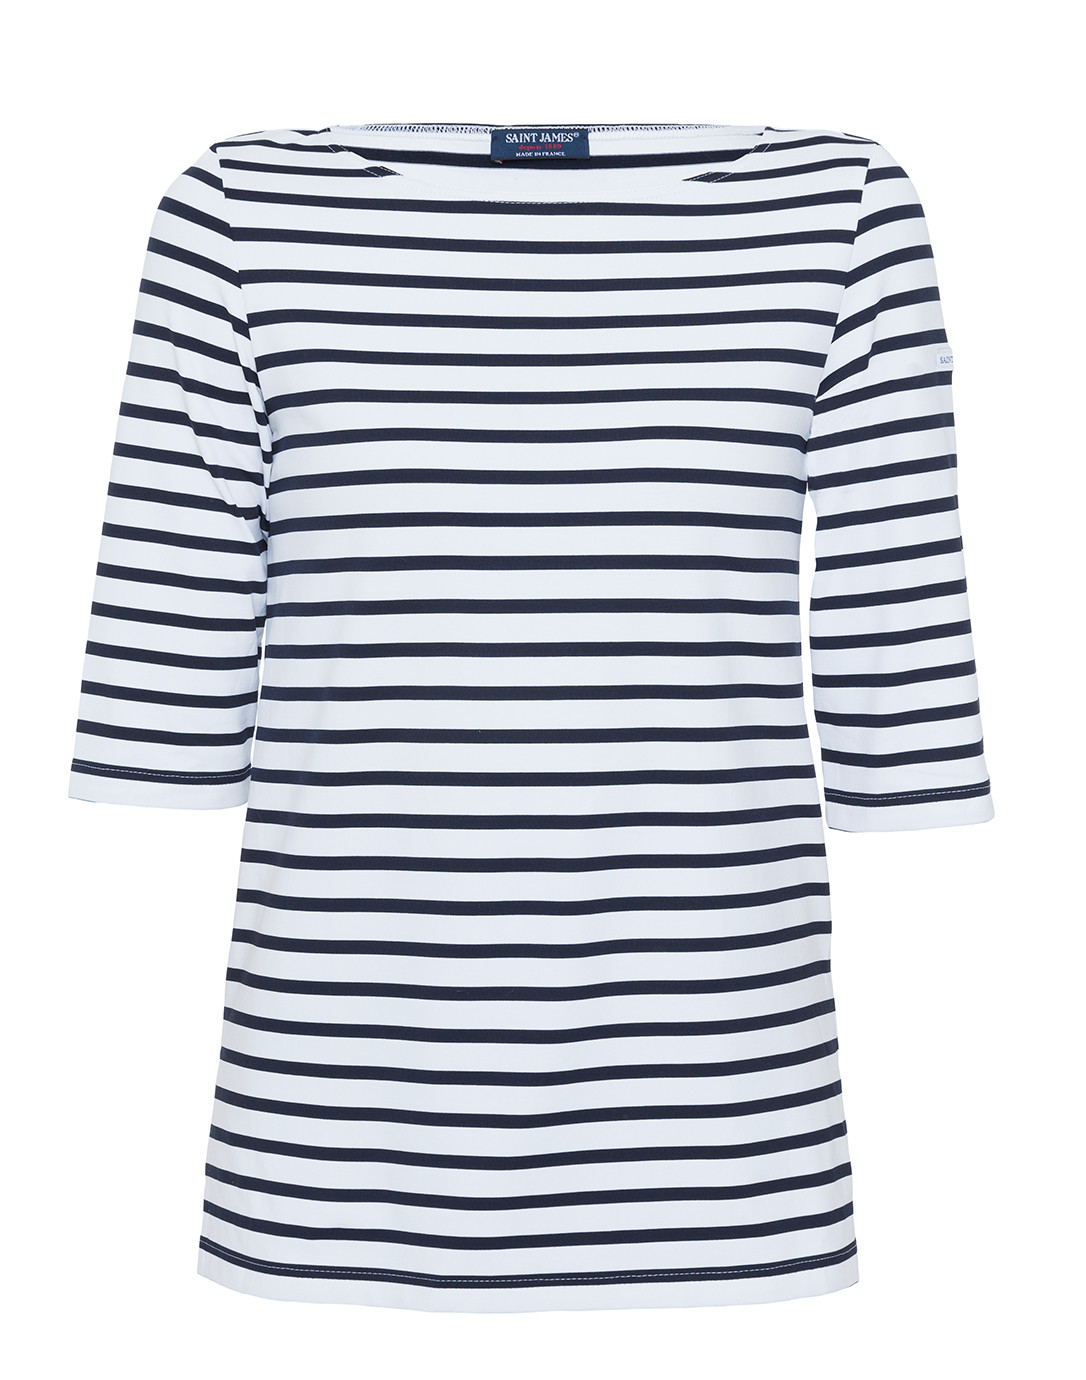 Phare white and navy striped shirt saint james halsbrook for St james striped shirt